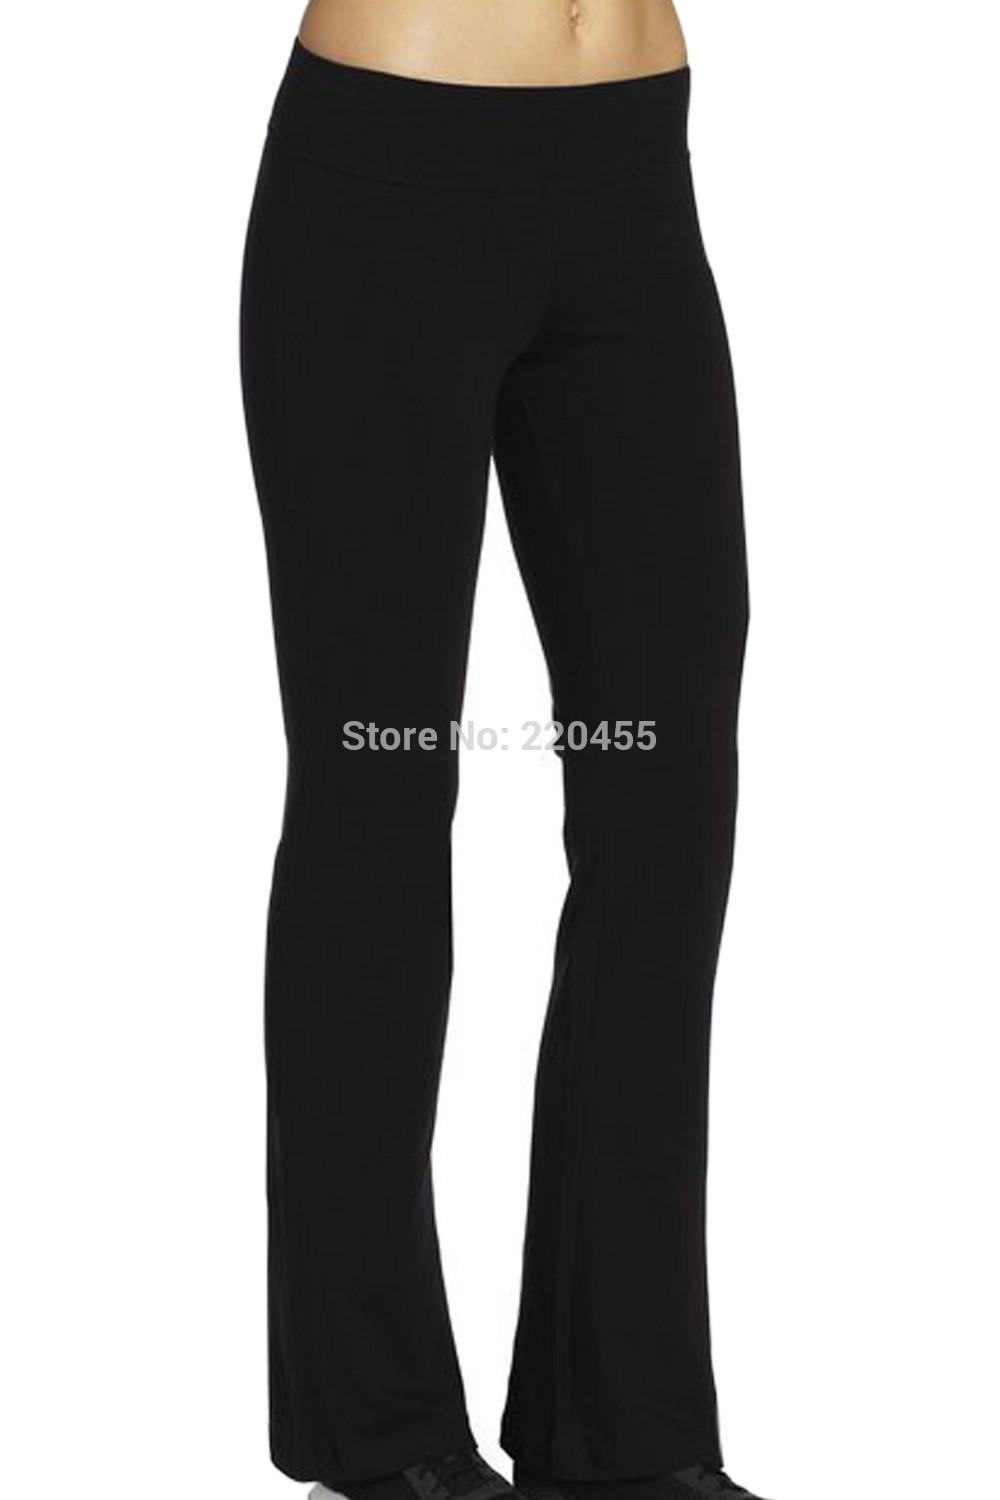 0397ba39e06eb9 2019 Wholesale ILoveSIA Women'S Sport Bootleg Flares Long Pants Full Length  Trousers Bell Bottomed Elastic Waist Casual Fitness Running From Aprili, ...